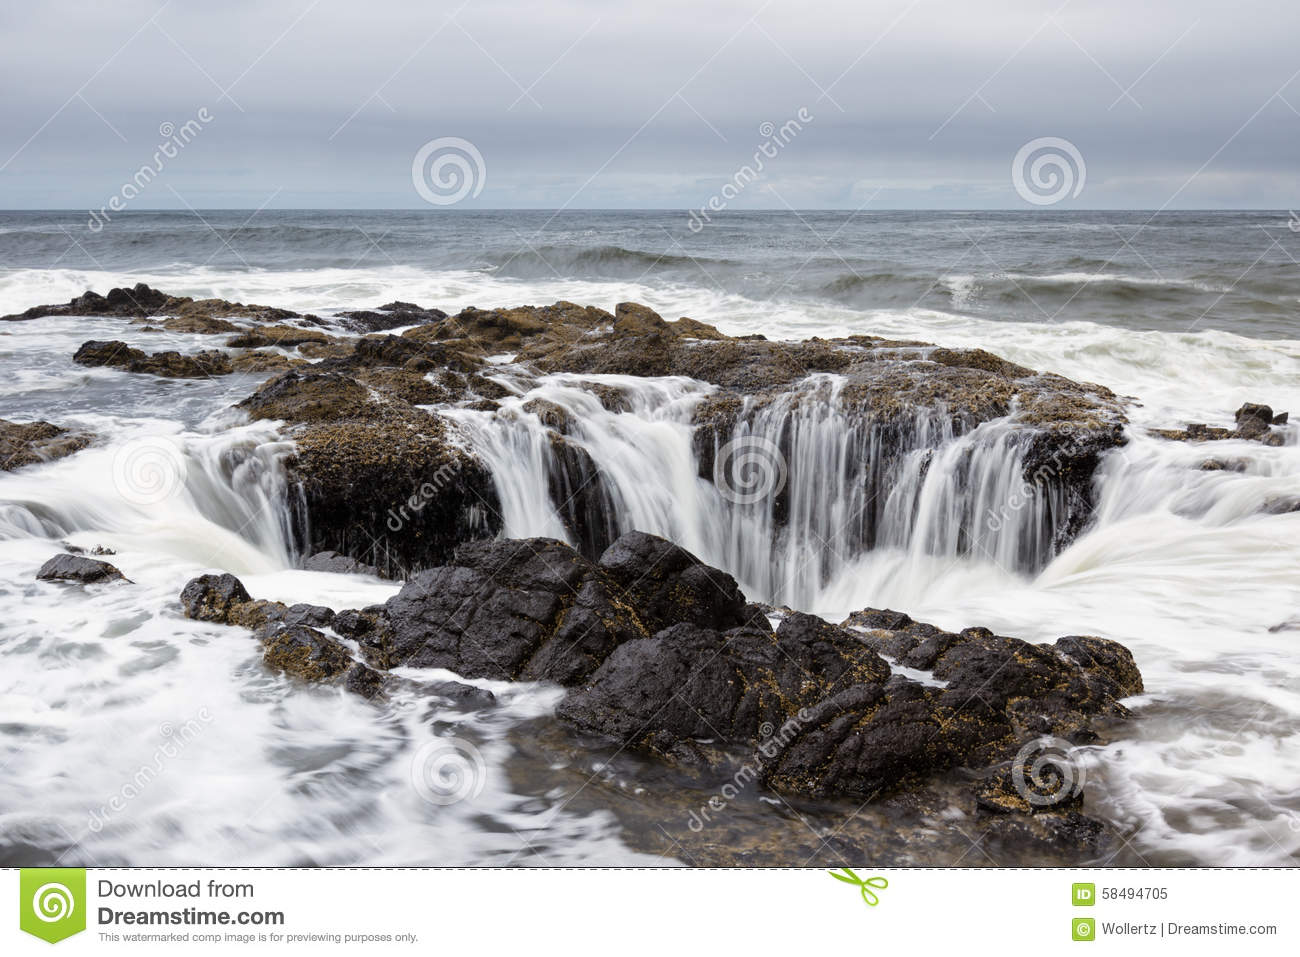 Thor's Well clipart #19, Download drawings